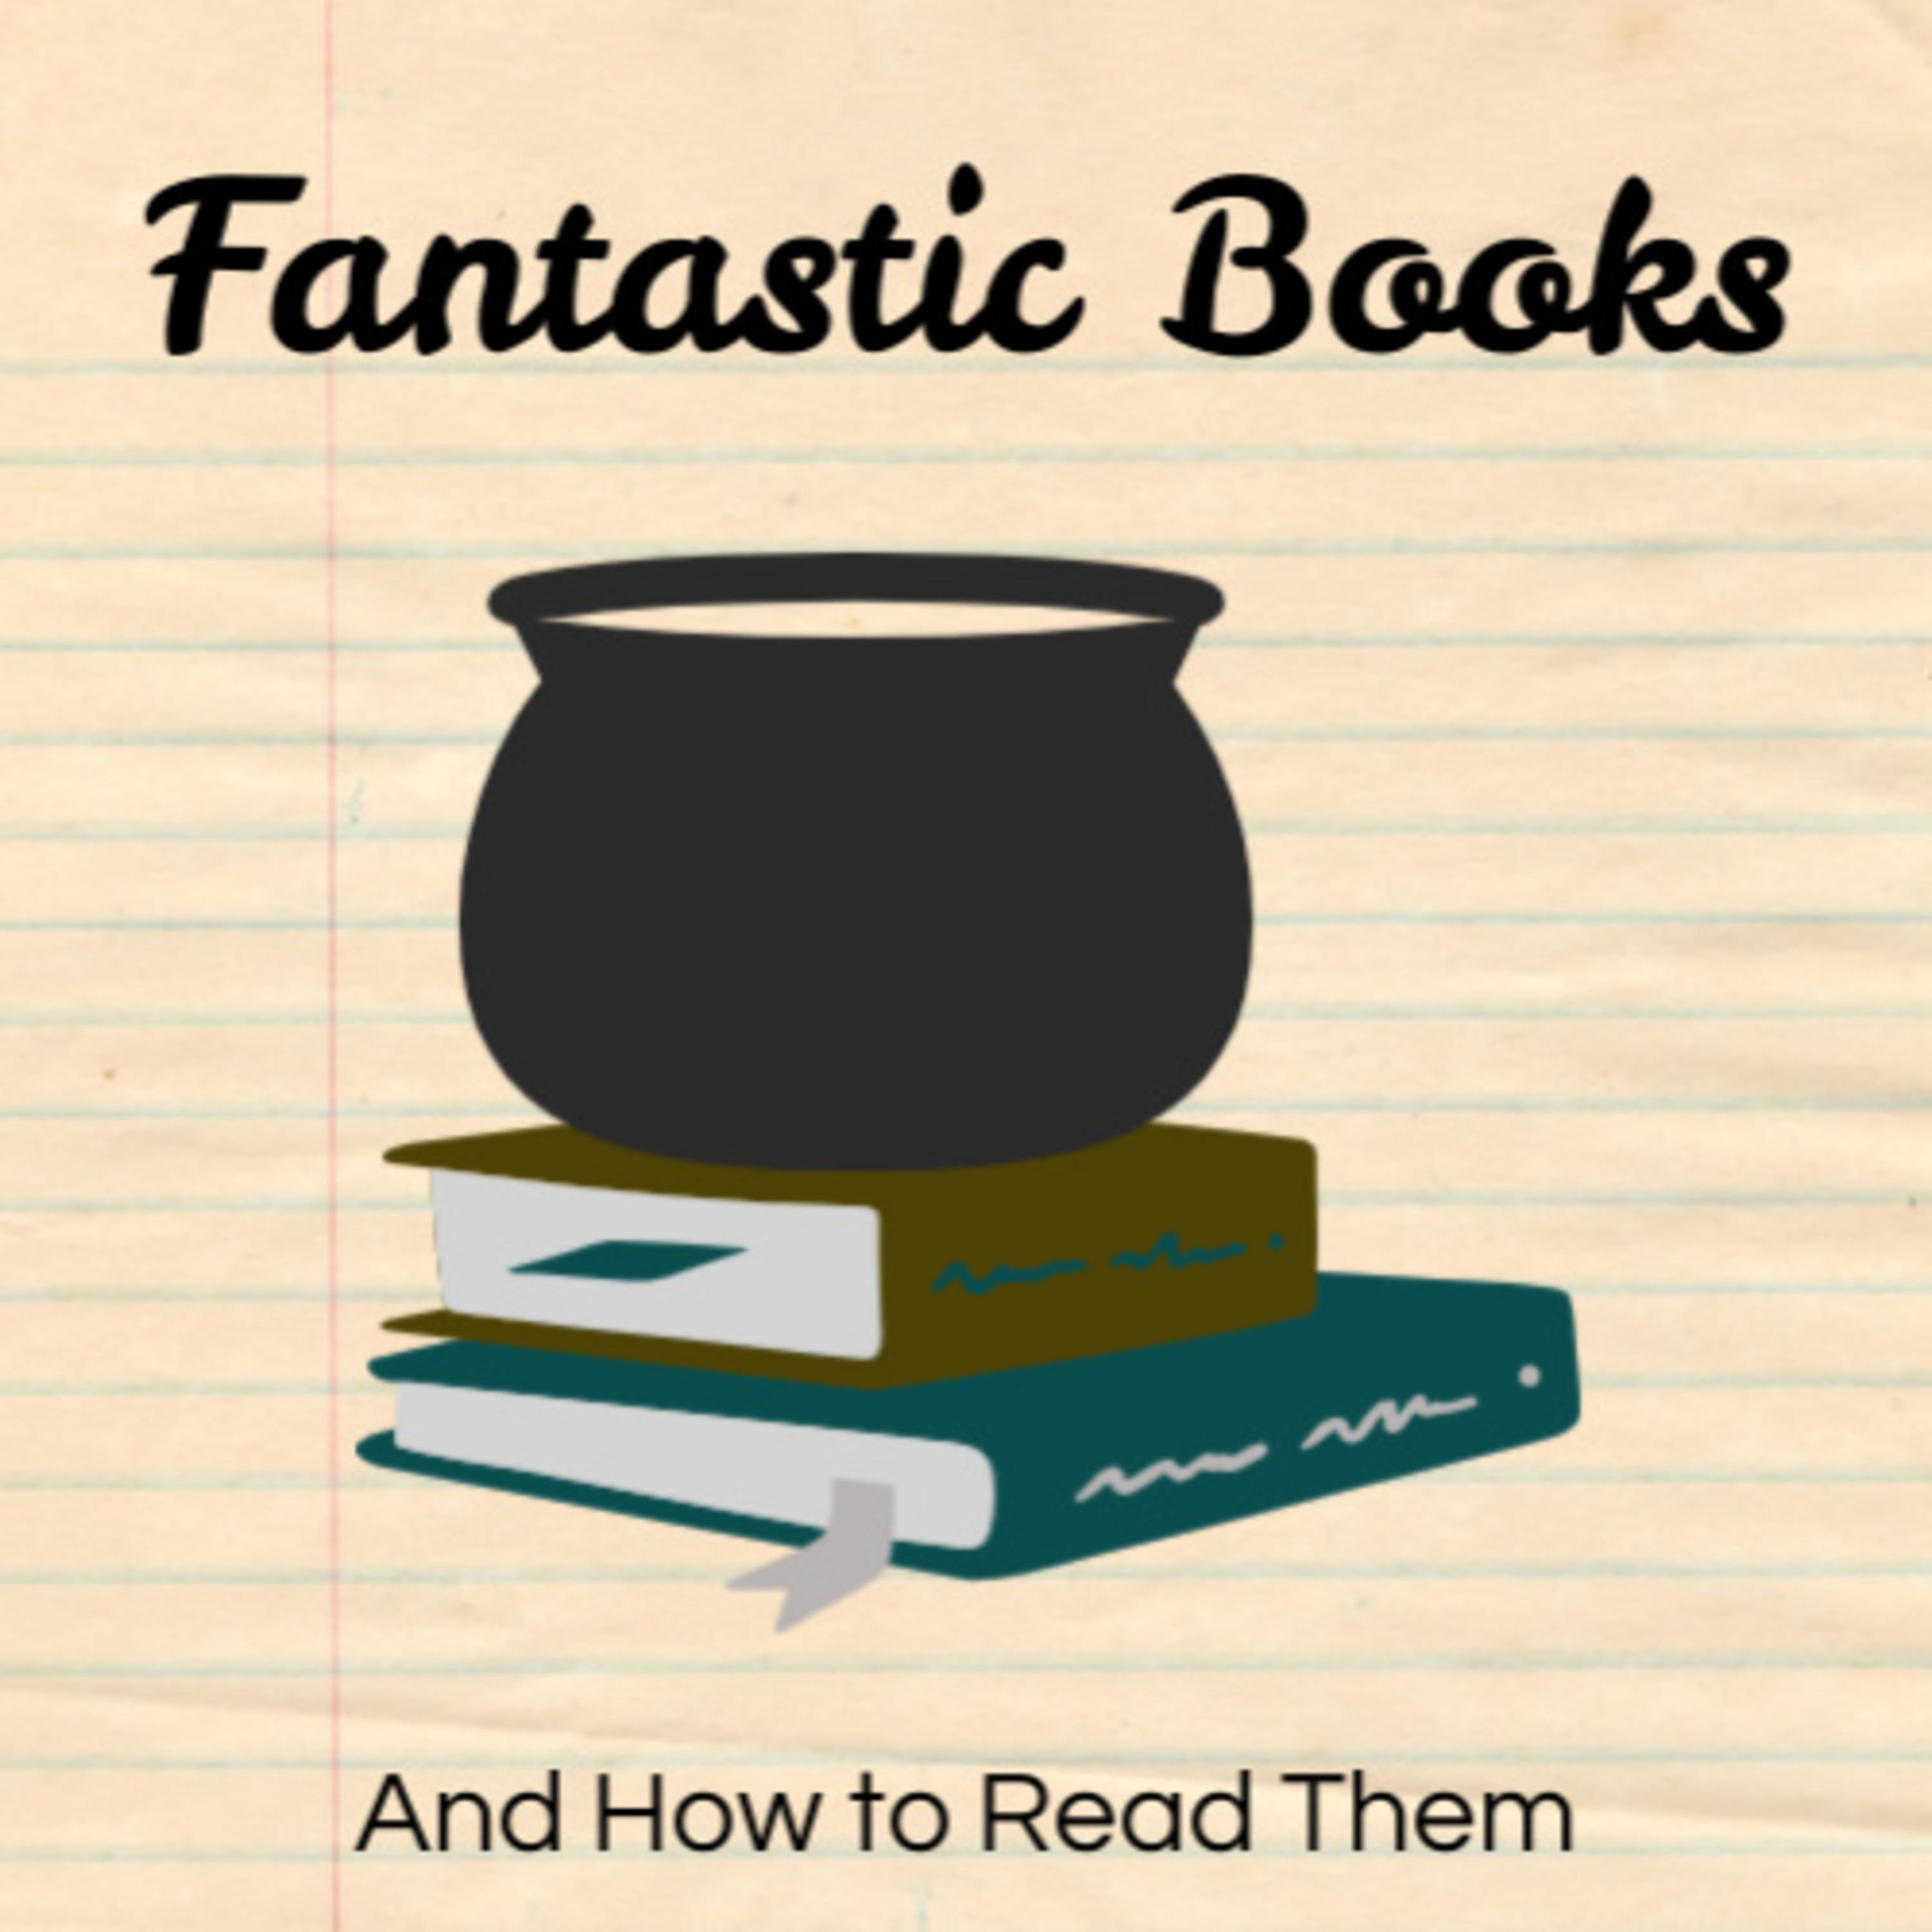 Fantastic Books and How to Read Them